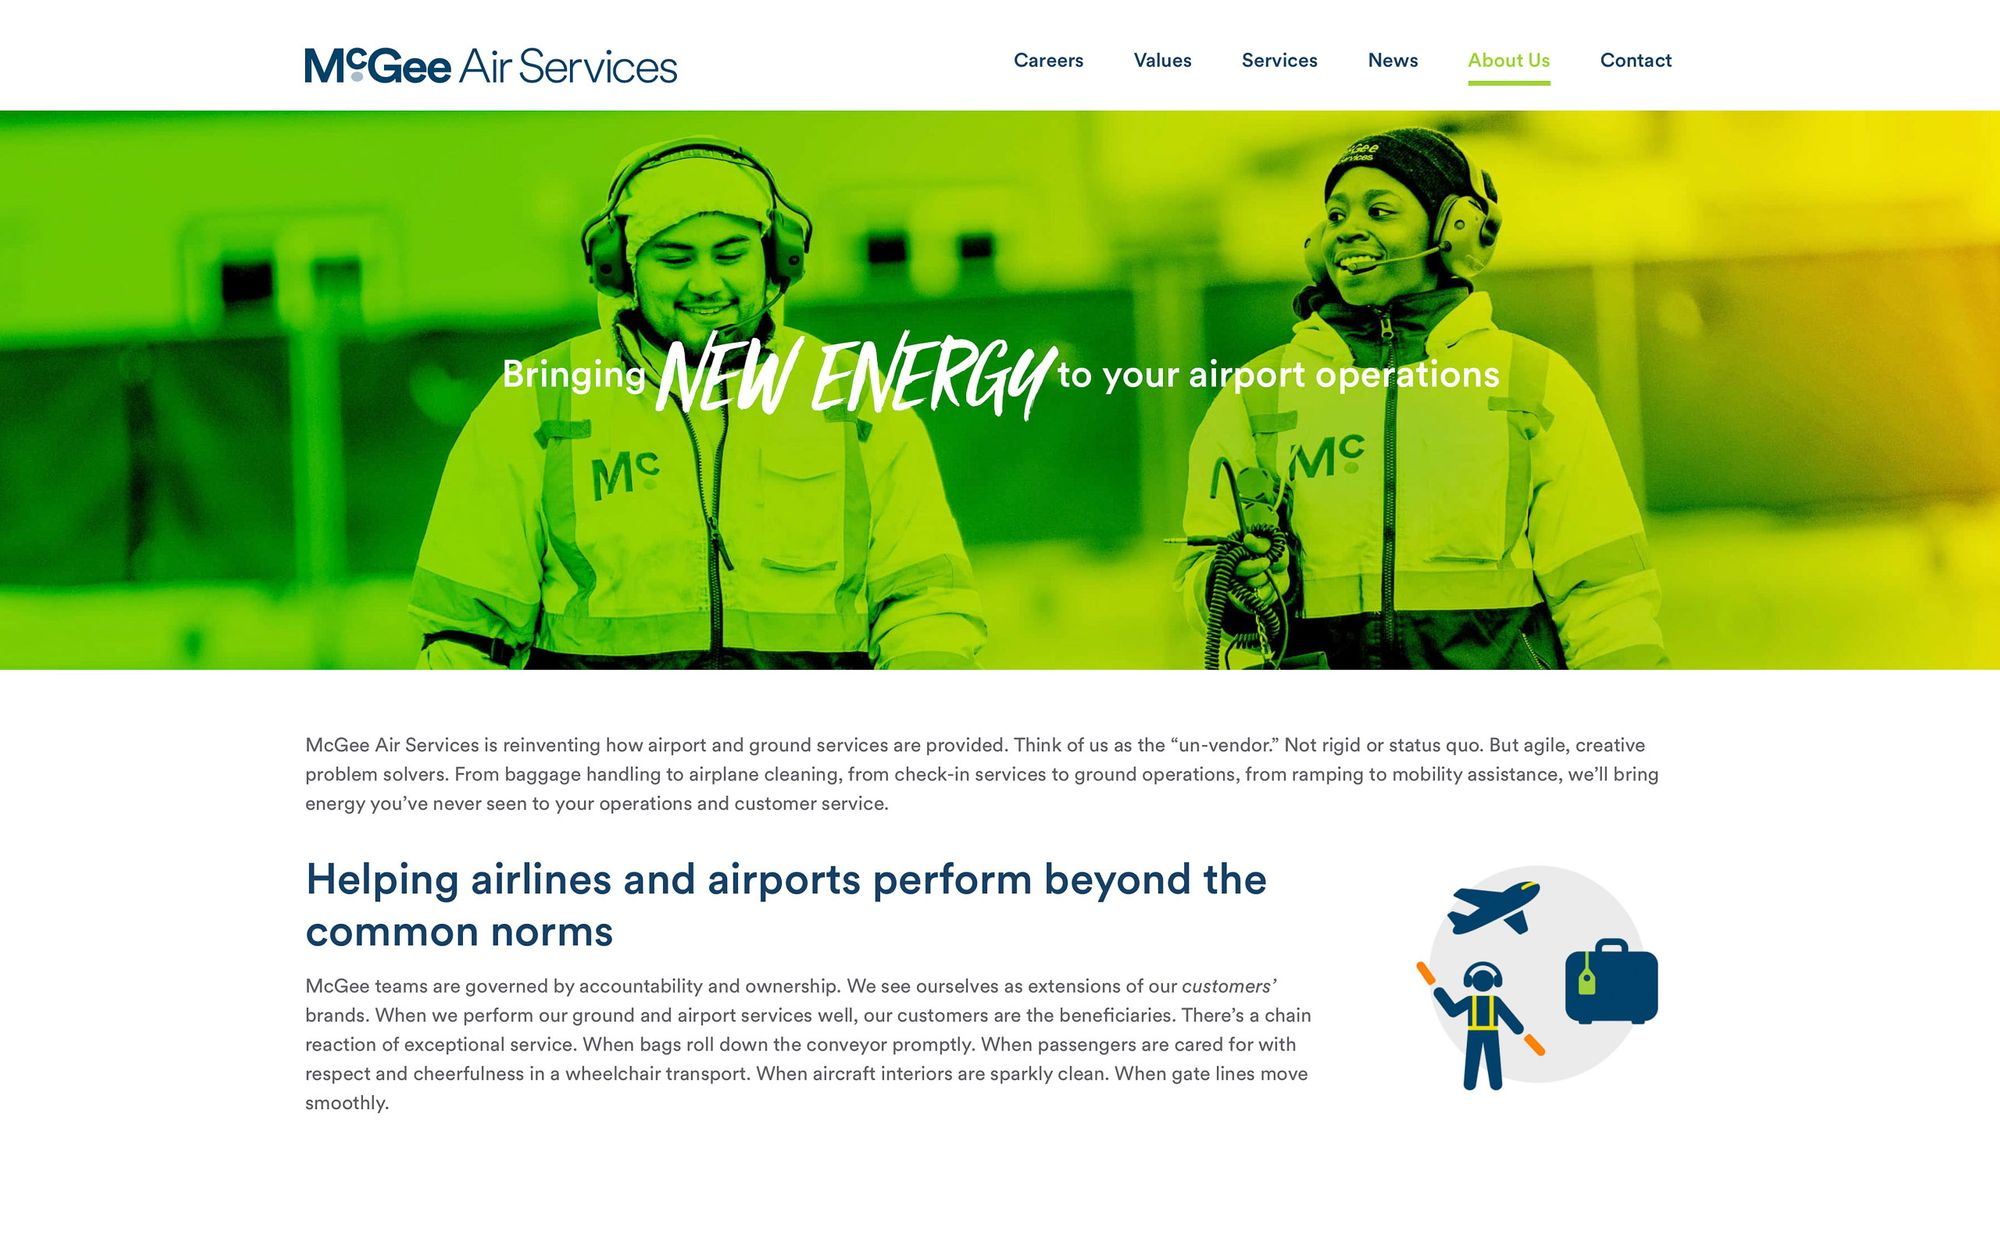 mcgee.airservices_004.jpg